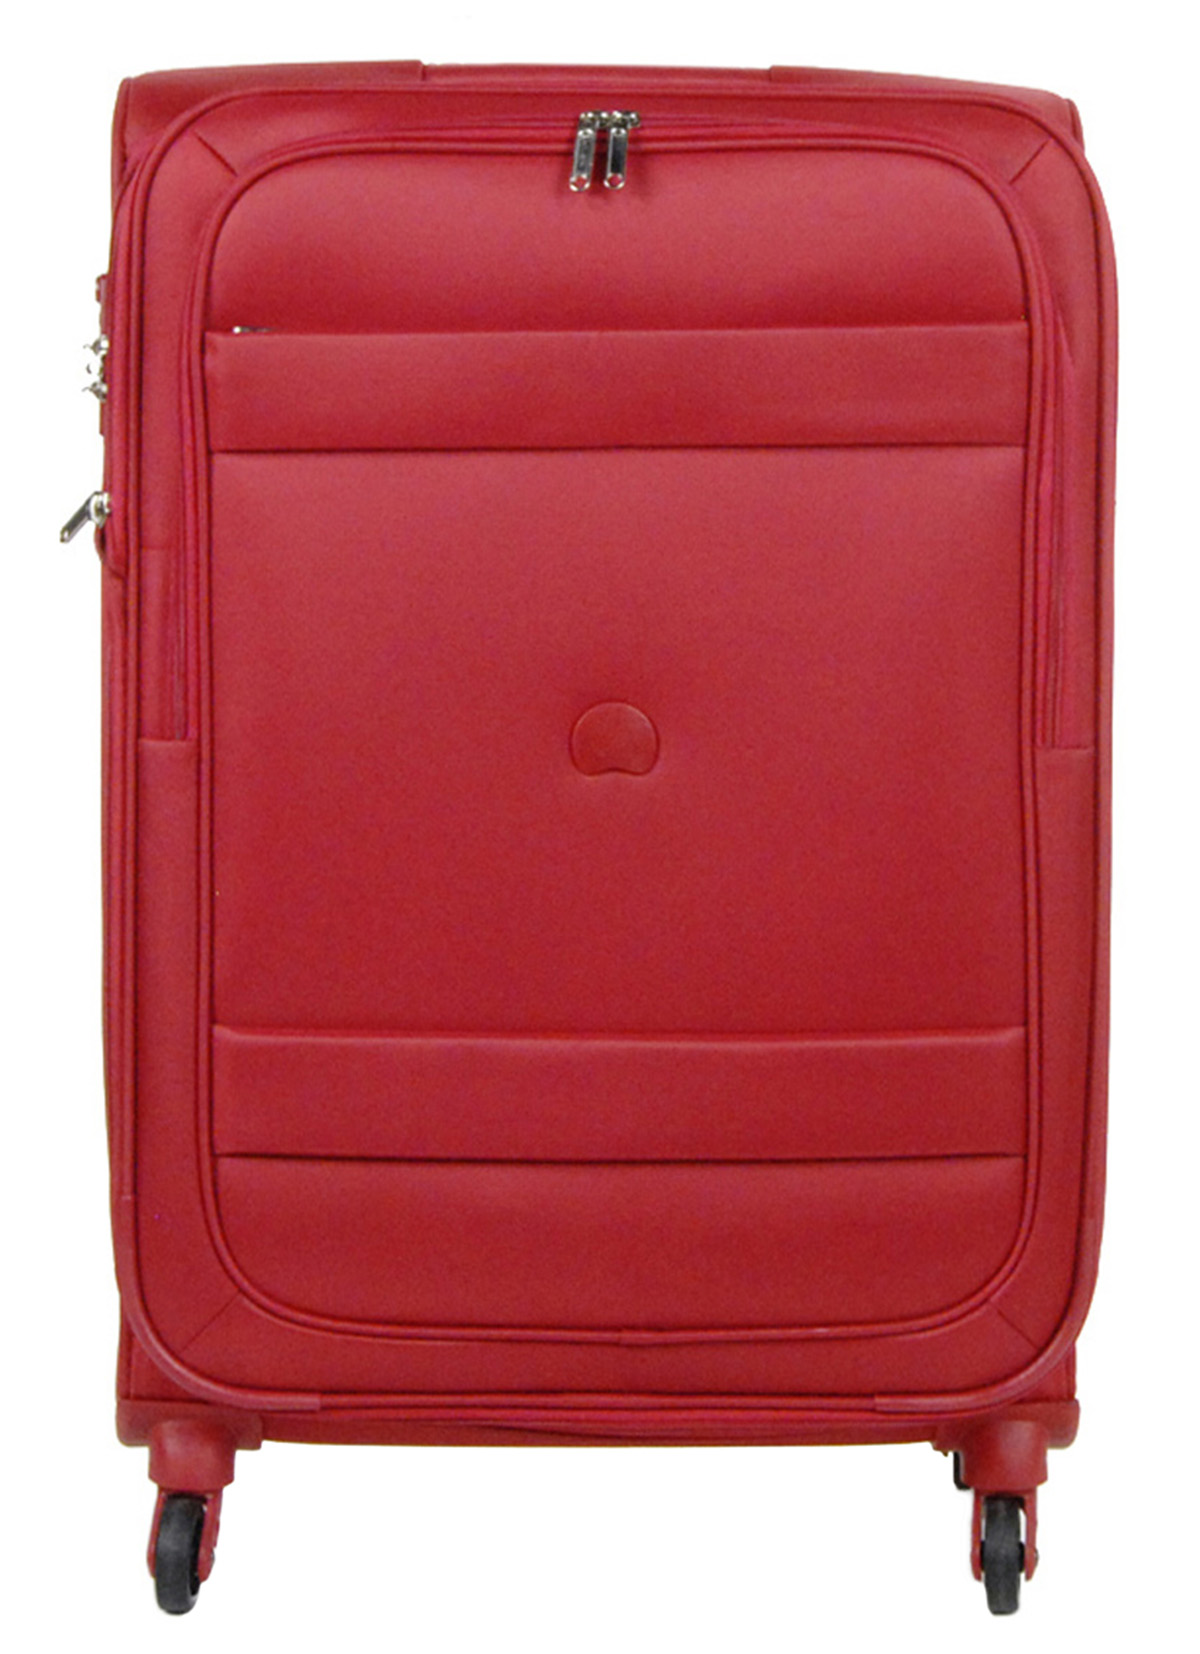 Valise taille 69 cm Delsey Indiscrete FeGBE7K